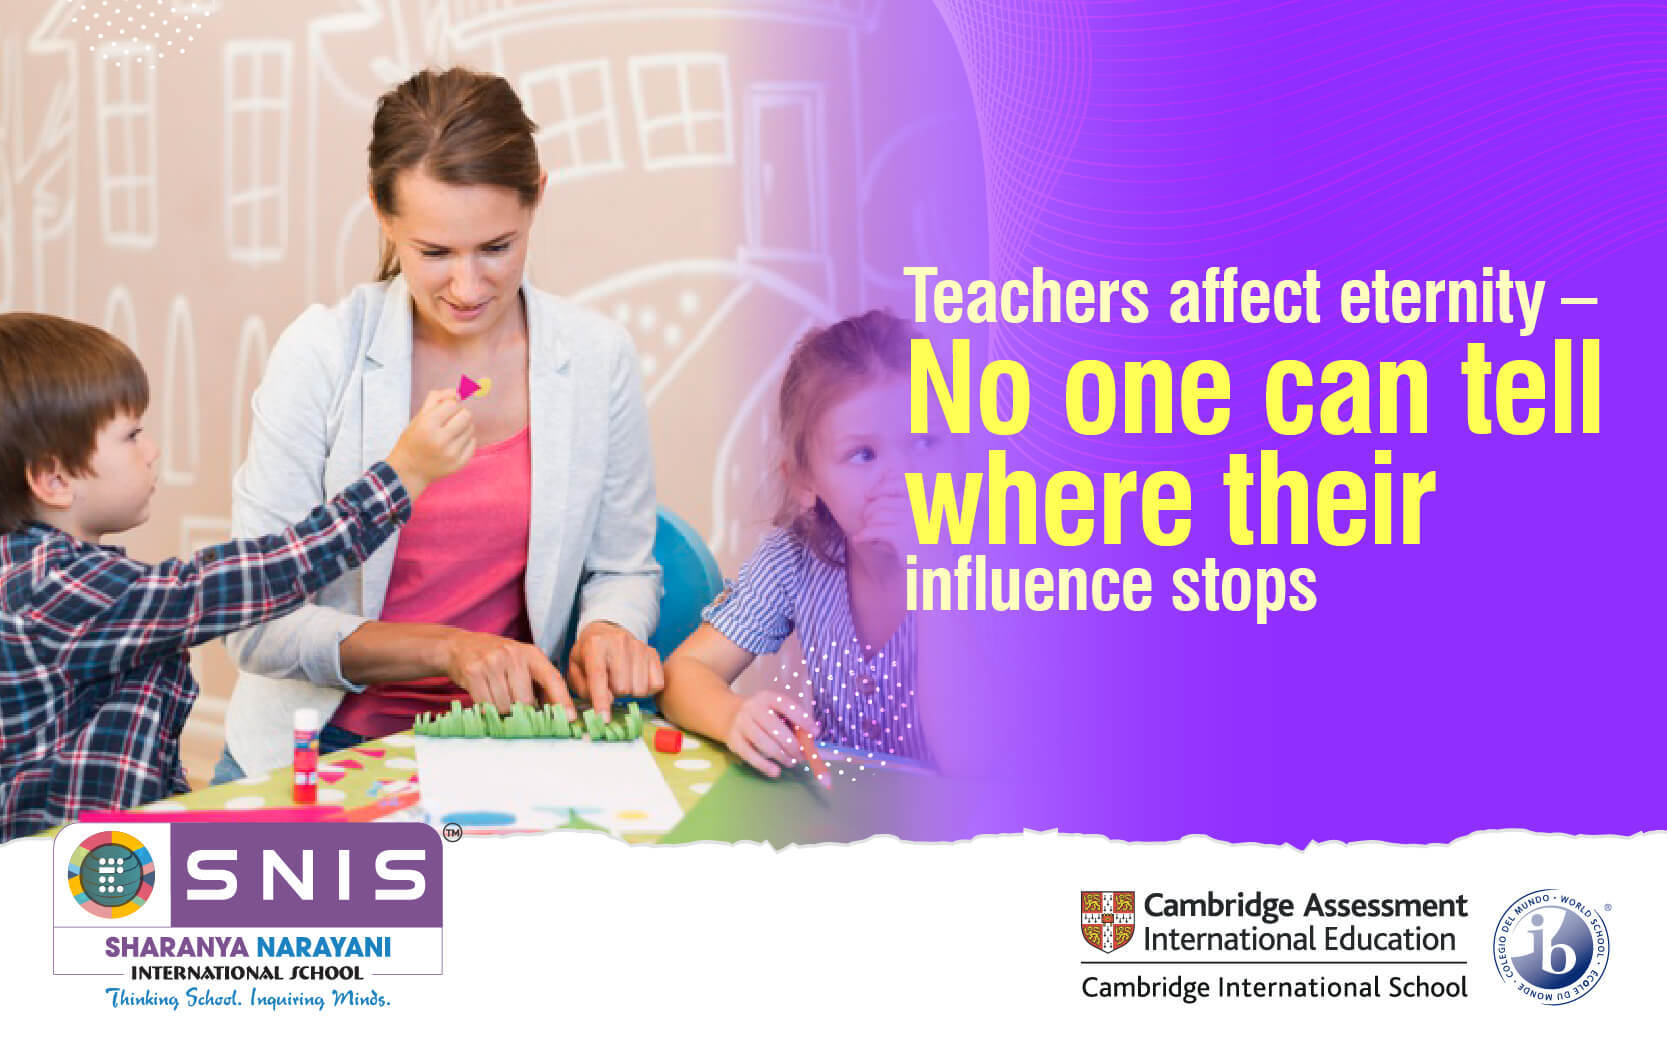 Teachers affect eternity - No one can tell where their influence stops by Best residential schools in bangalore